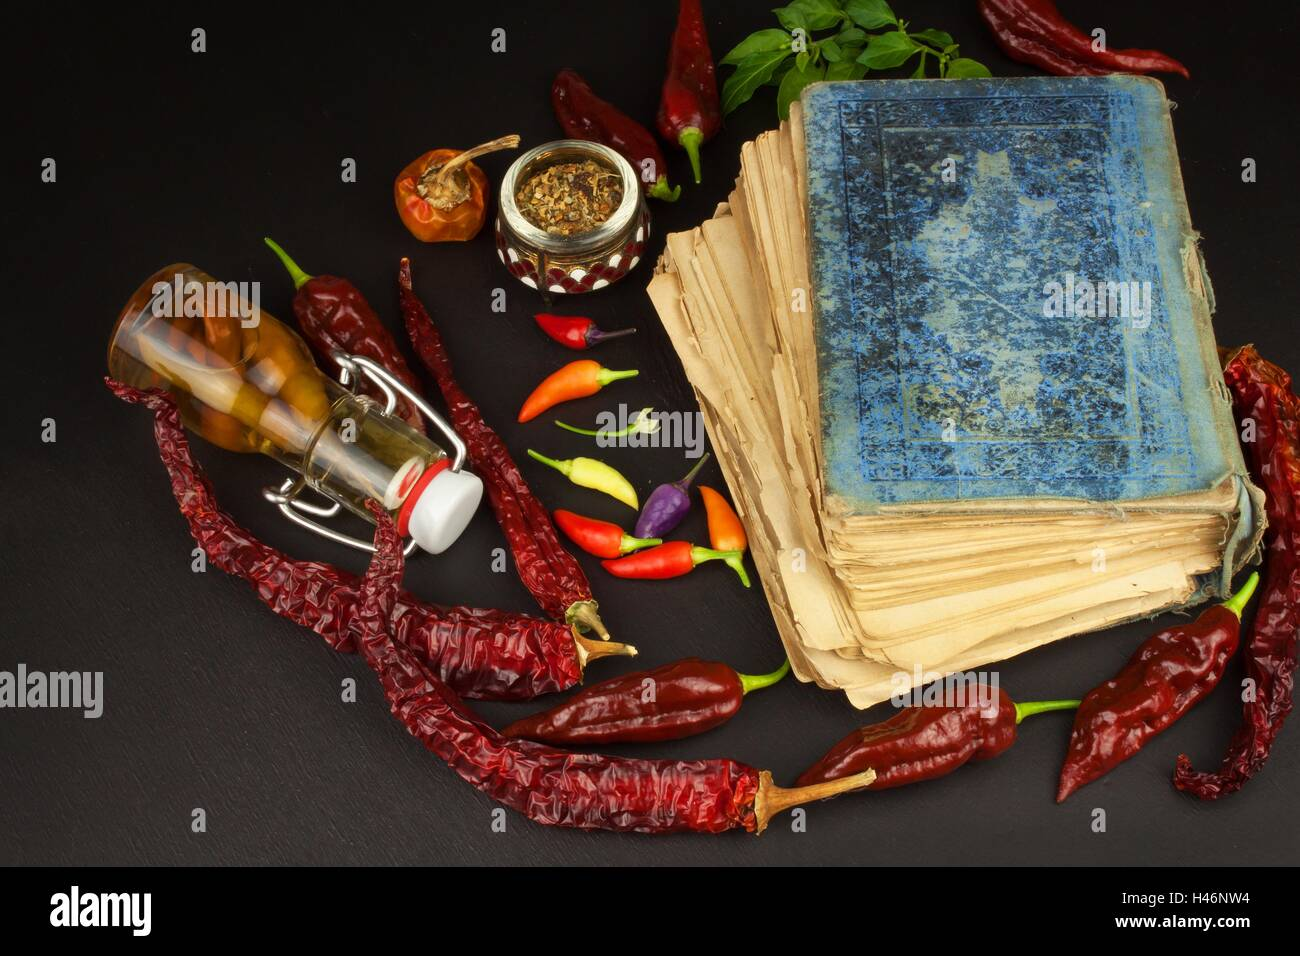 Cookbook and chillies recipe for spicy food mexican cuisine food cookbook and chillies recipe for spicy food mexican cuisine food preparation according to the old recipe book forumfinder Gallery